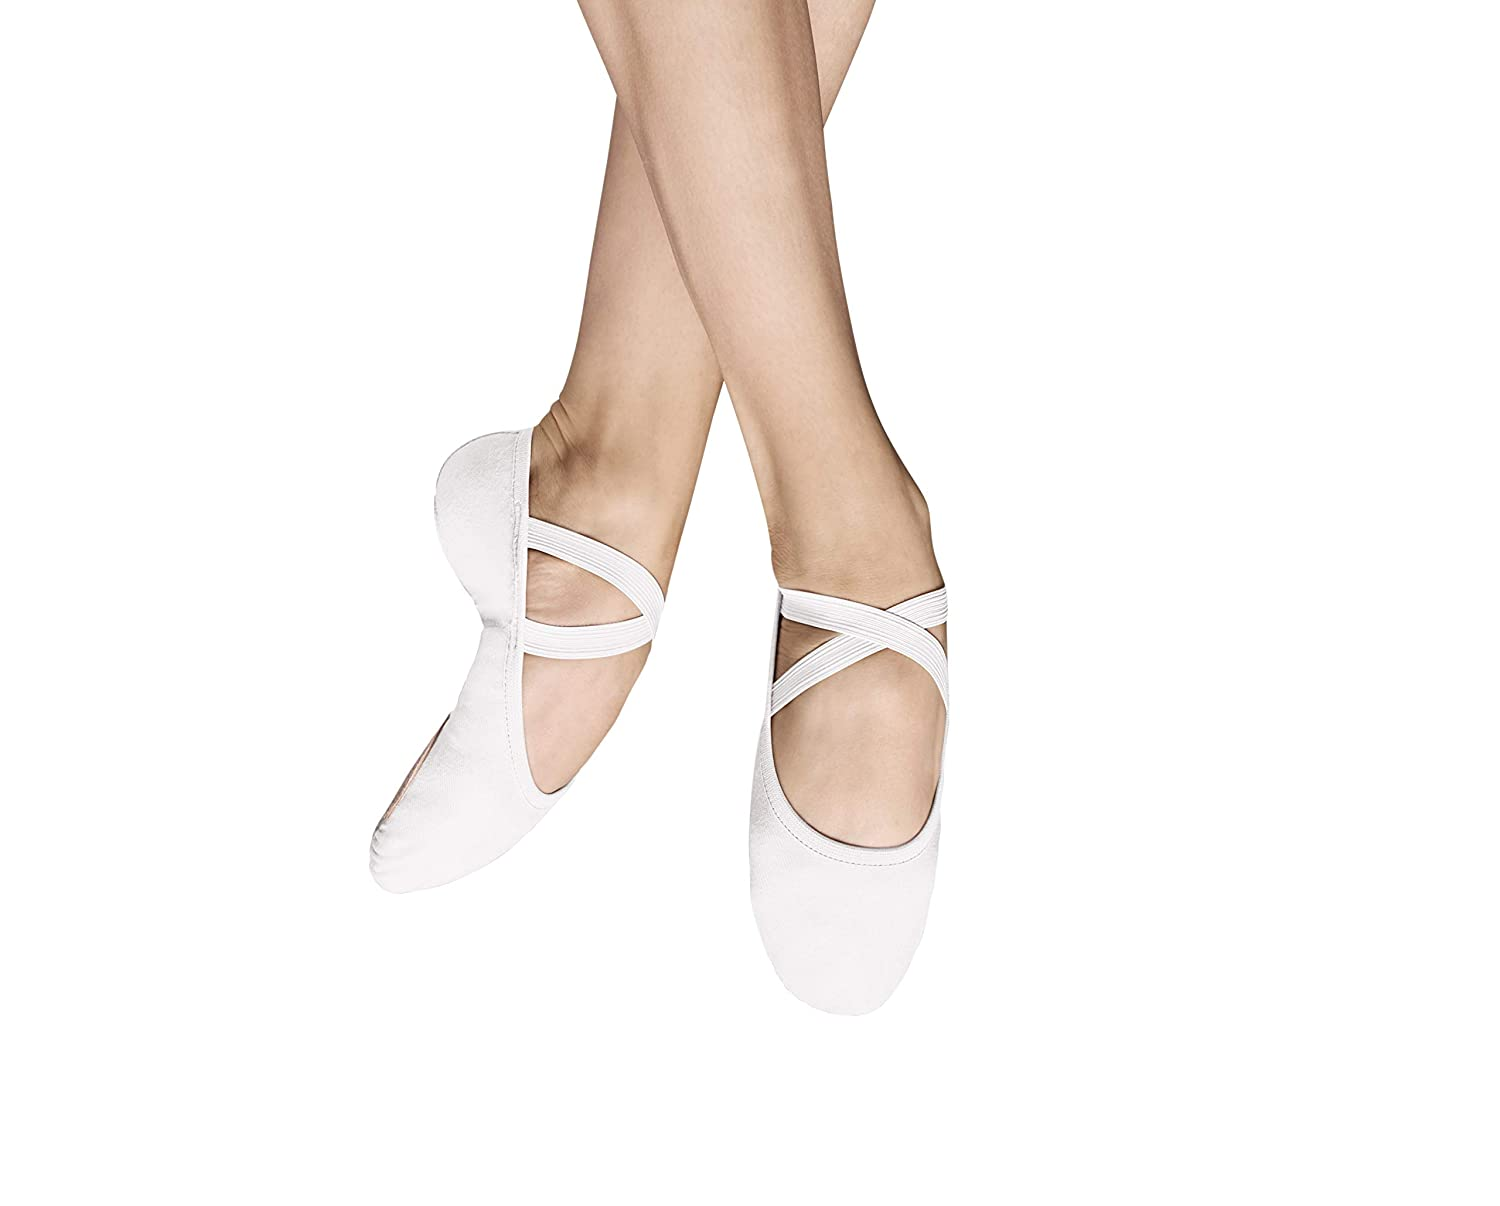 高質で安価 [Bloch] US Men's Performa Ballet B Shoe Fabric 7.5 Flat B07B32L8DR 7.5 B US|White 100 White 100 7.5 B US, はぶらし専門店 ハイズ:b35977c6 --- a0267596.xsph.ru